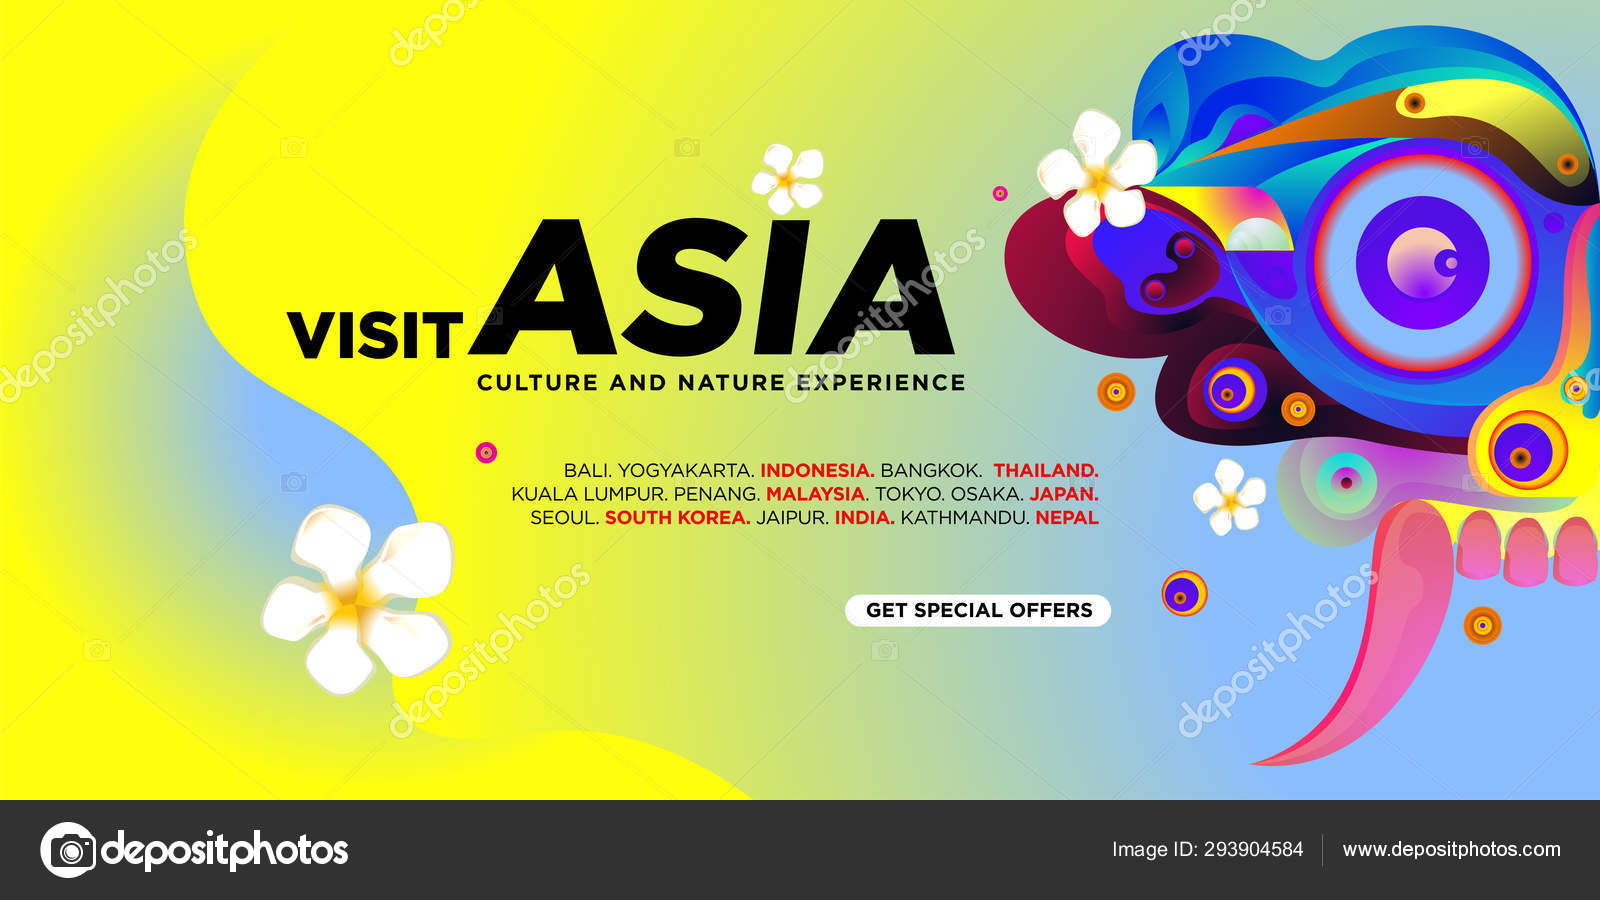 world travel day asian visit banner template vector illustration indonesian stock vector c rebermant 293904584 world travel day asian visit banner template vector illustration indonesian stock vector c rebermant 293904584